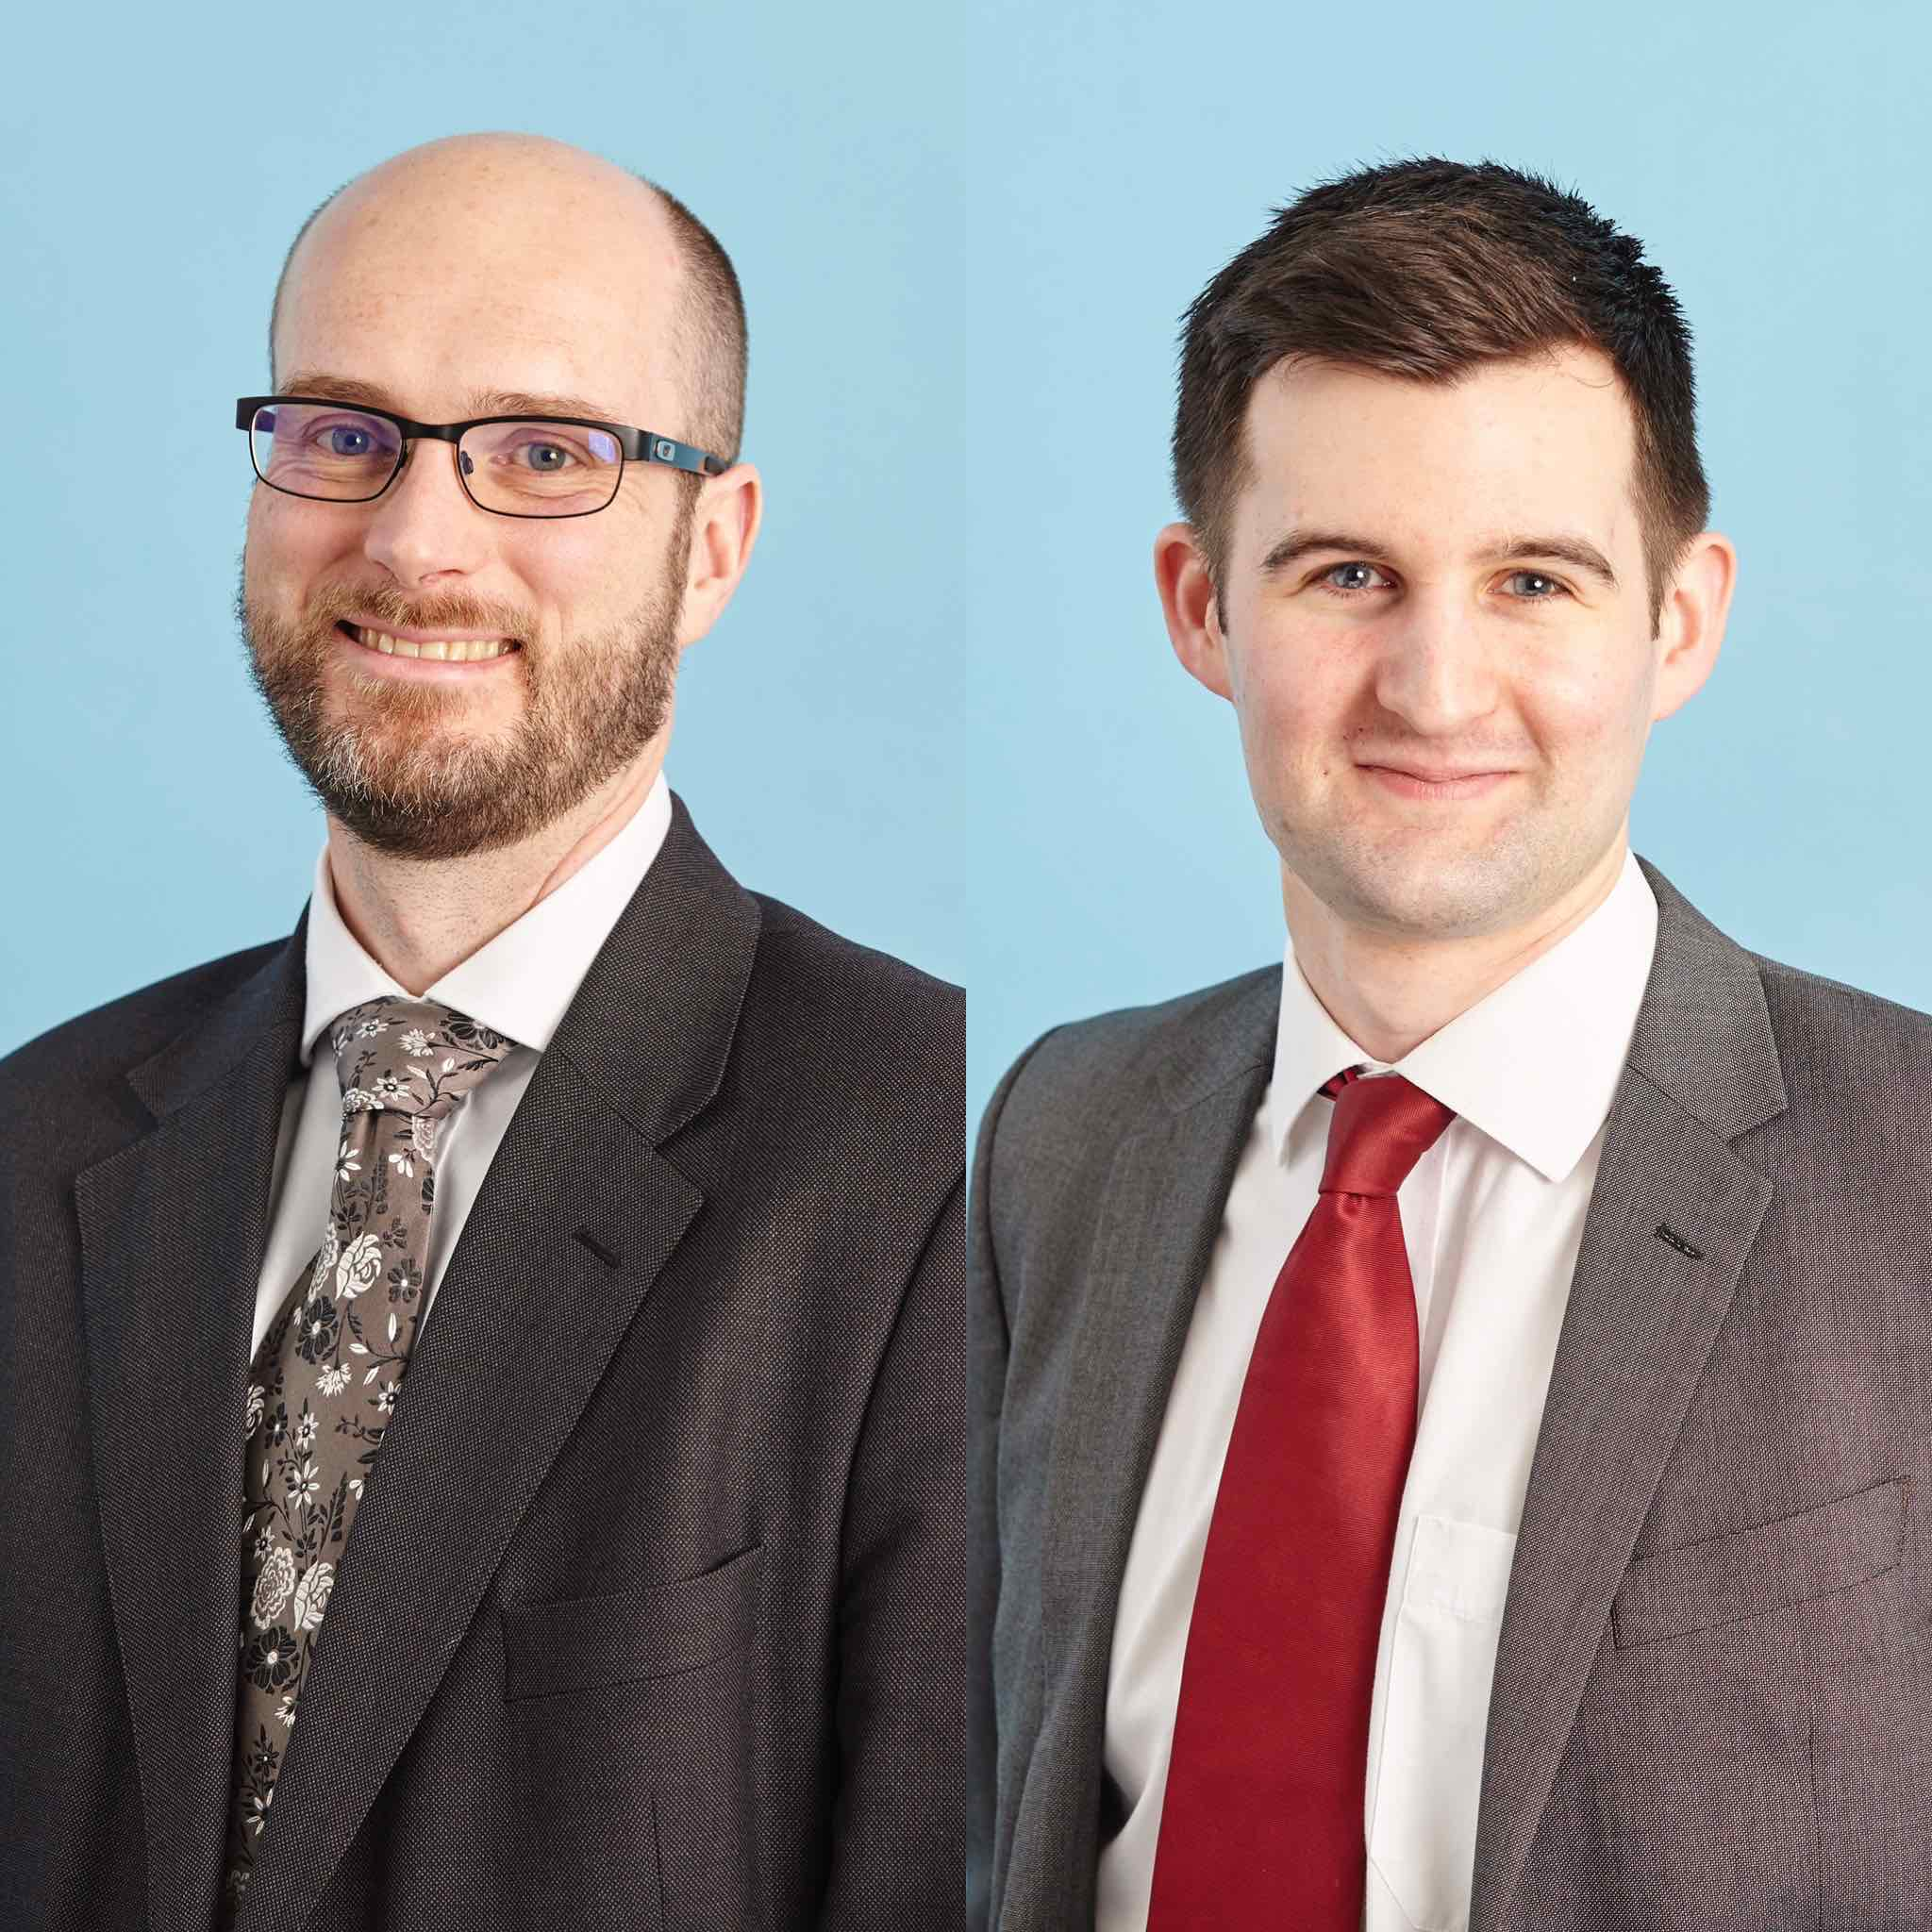 David Smith & Robin Stewart at Anthony Gold Solicitors